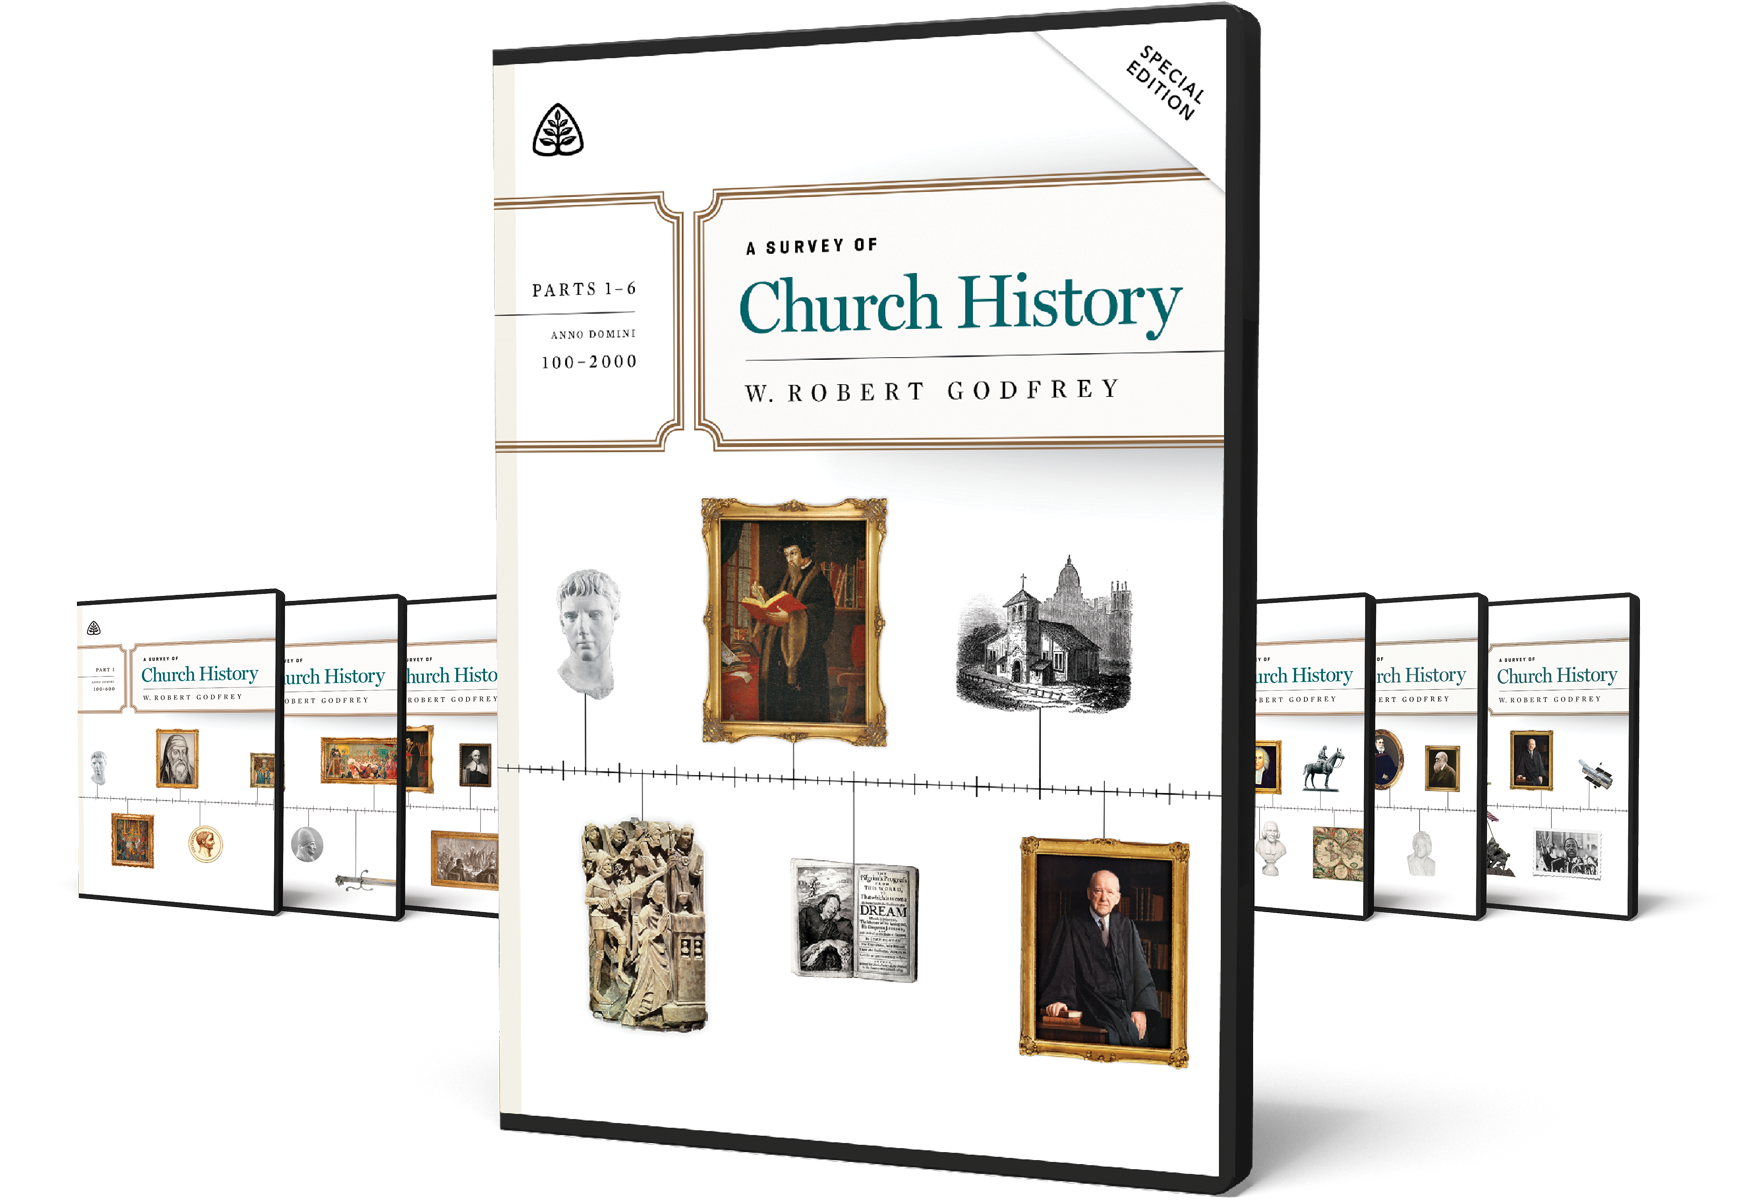 A Survey of Church History, Parts 1-6